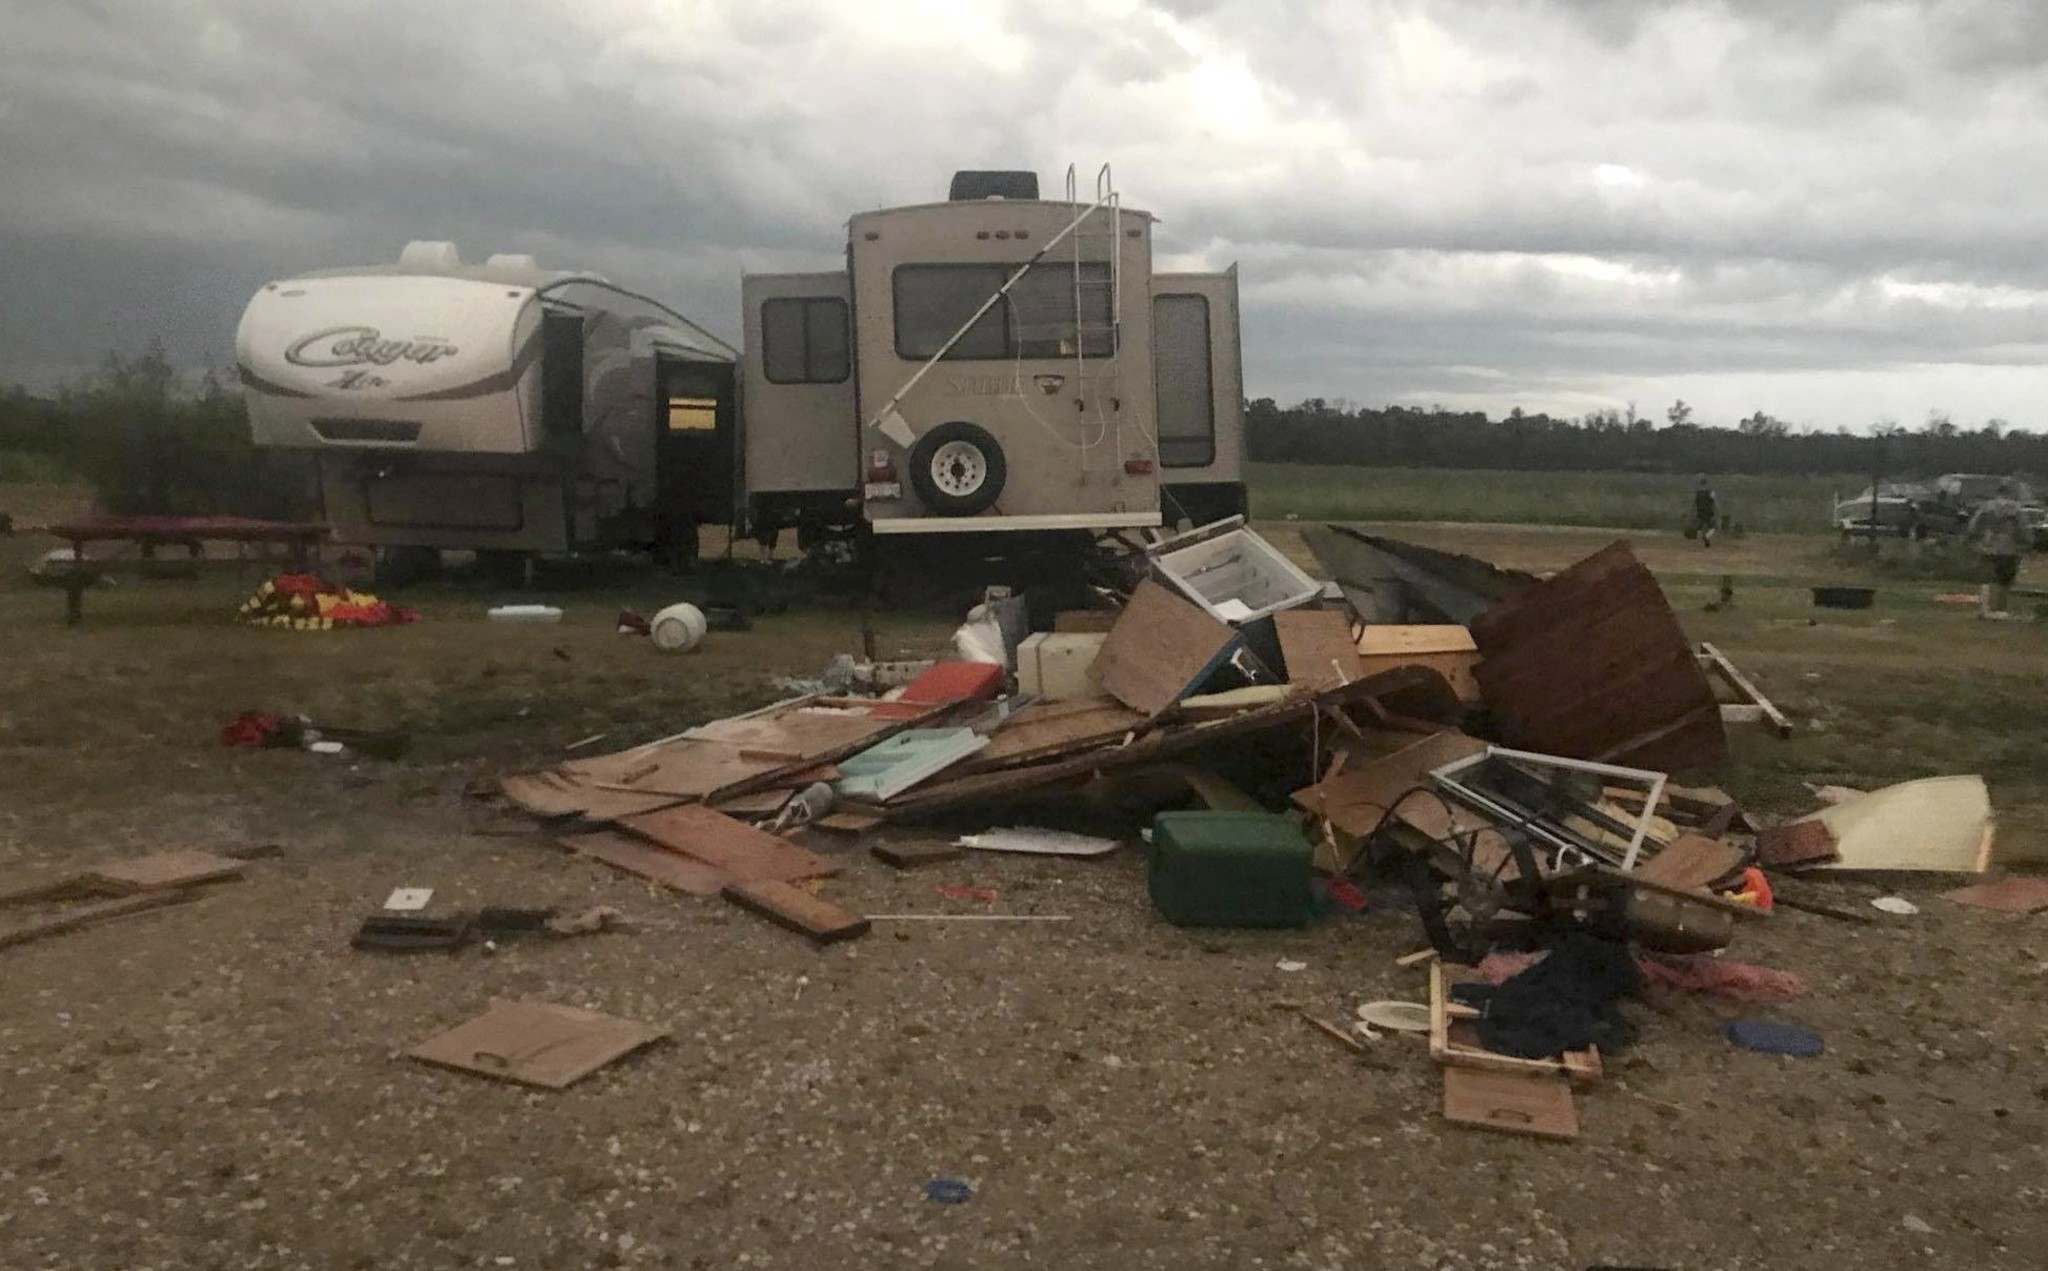 Many people left their campers behind after Friday&#39;s tornado and councillors in the area are concerned thieves might nab valuables from the site. (Vanessa Whyte / Facebook)</p>